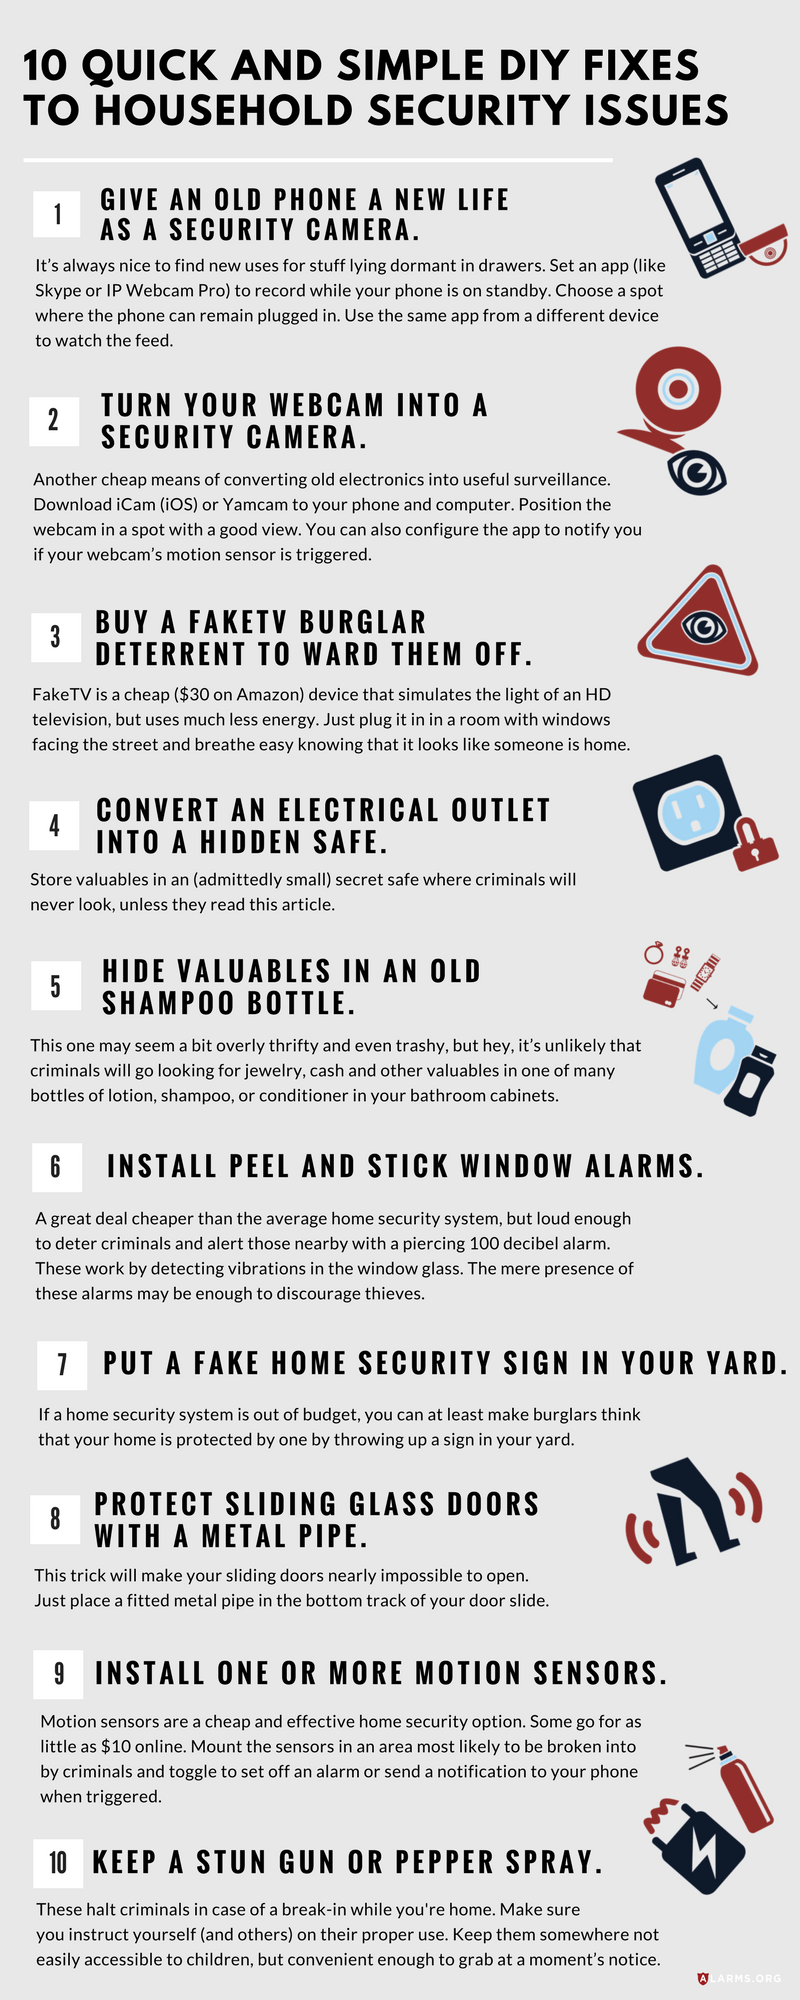 Infographic: 10 Quick and Simple DIY Fixes to Common Household Security Issues